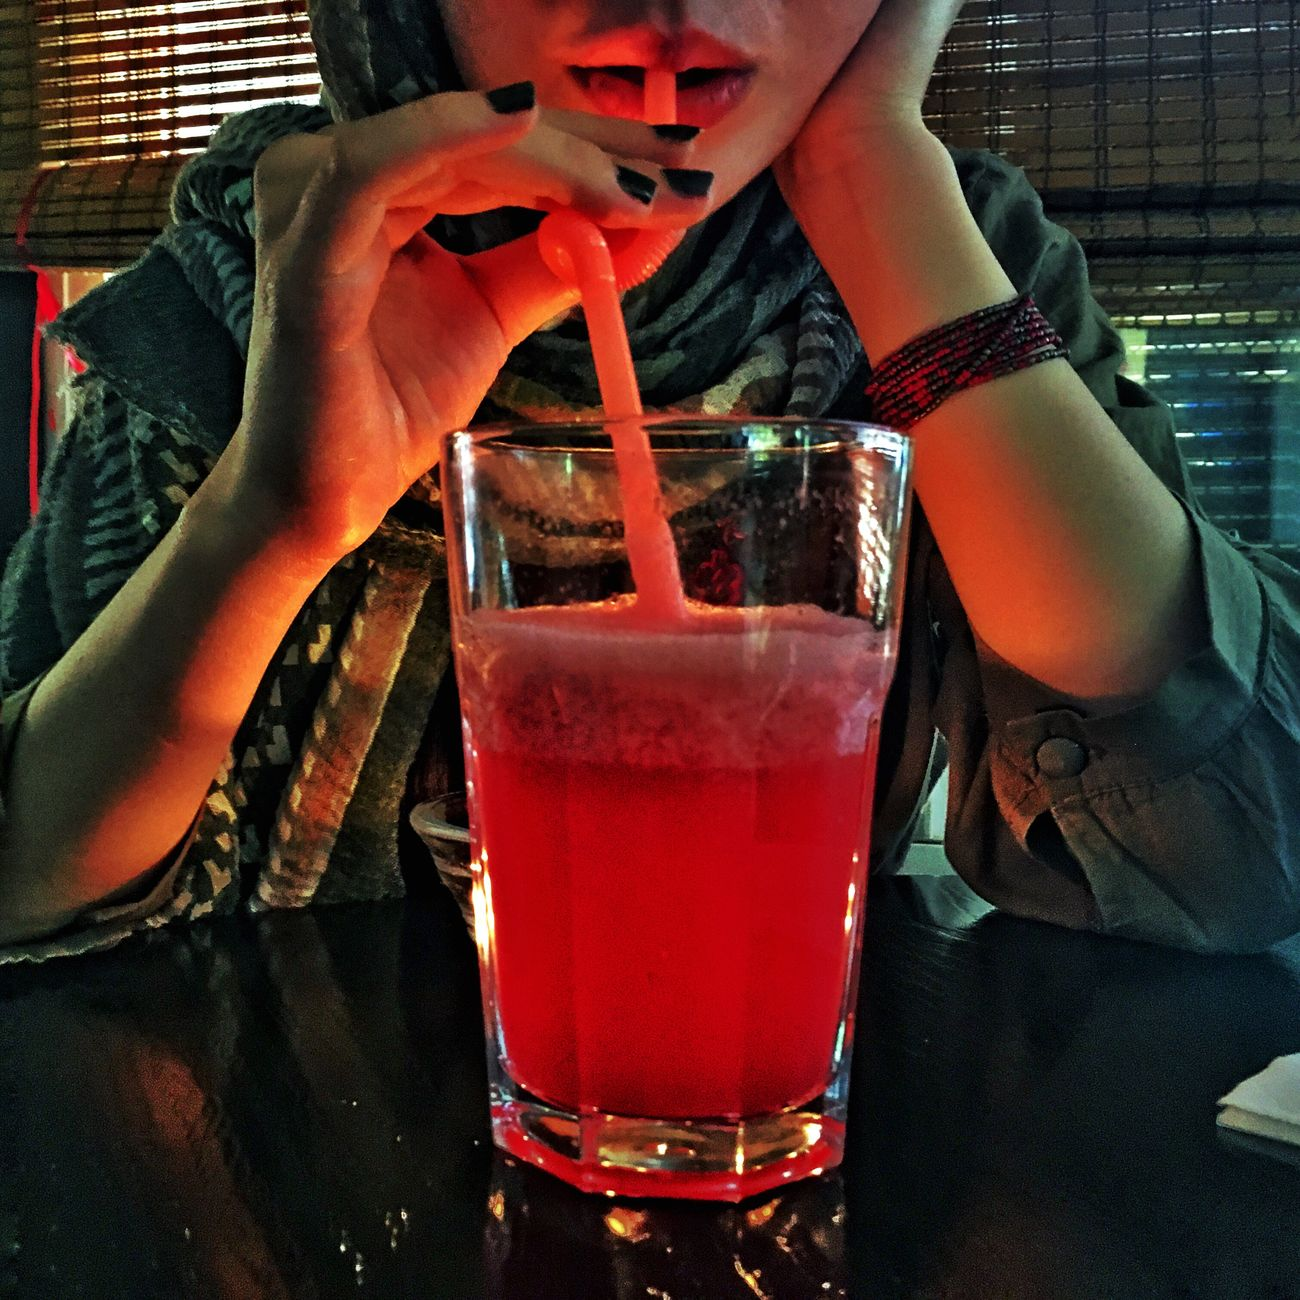 Drink Real People Drinking Straw One Person Food And Drink Lifestyles Cocktail Refreshment Drinking Glass Leisure Activity Drinking Alcohol Human Body Part Close-up Freshness Indoors  Human Hand Day People Adult Visual Feast Visual Feast